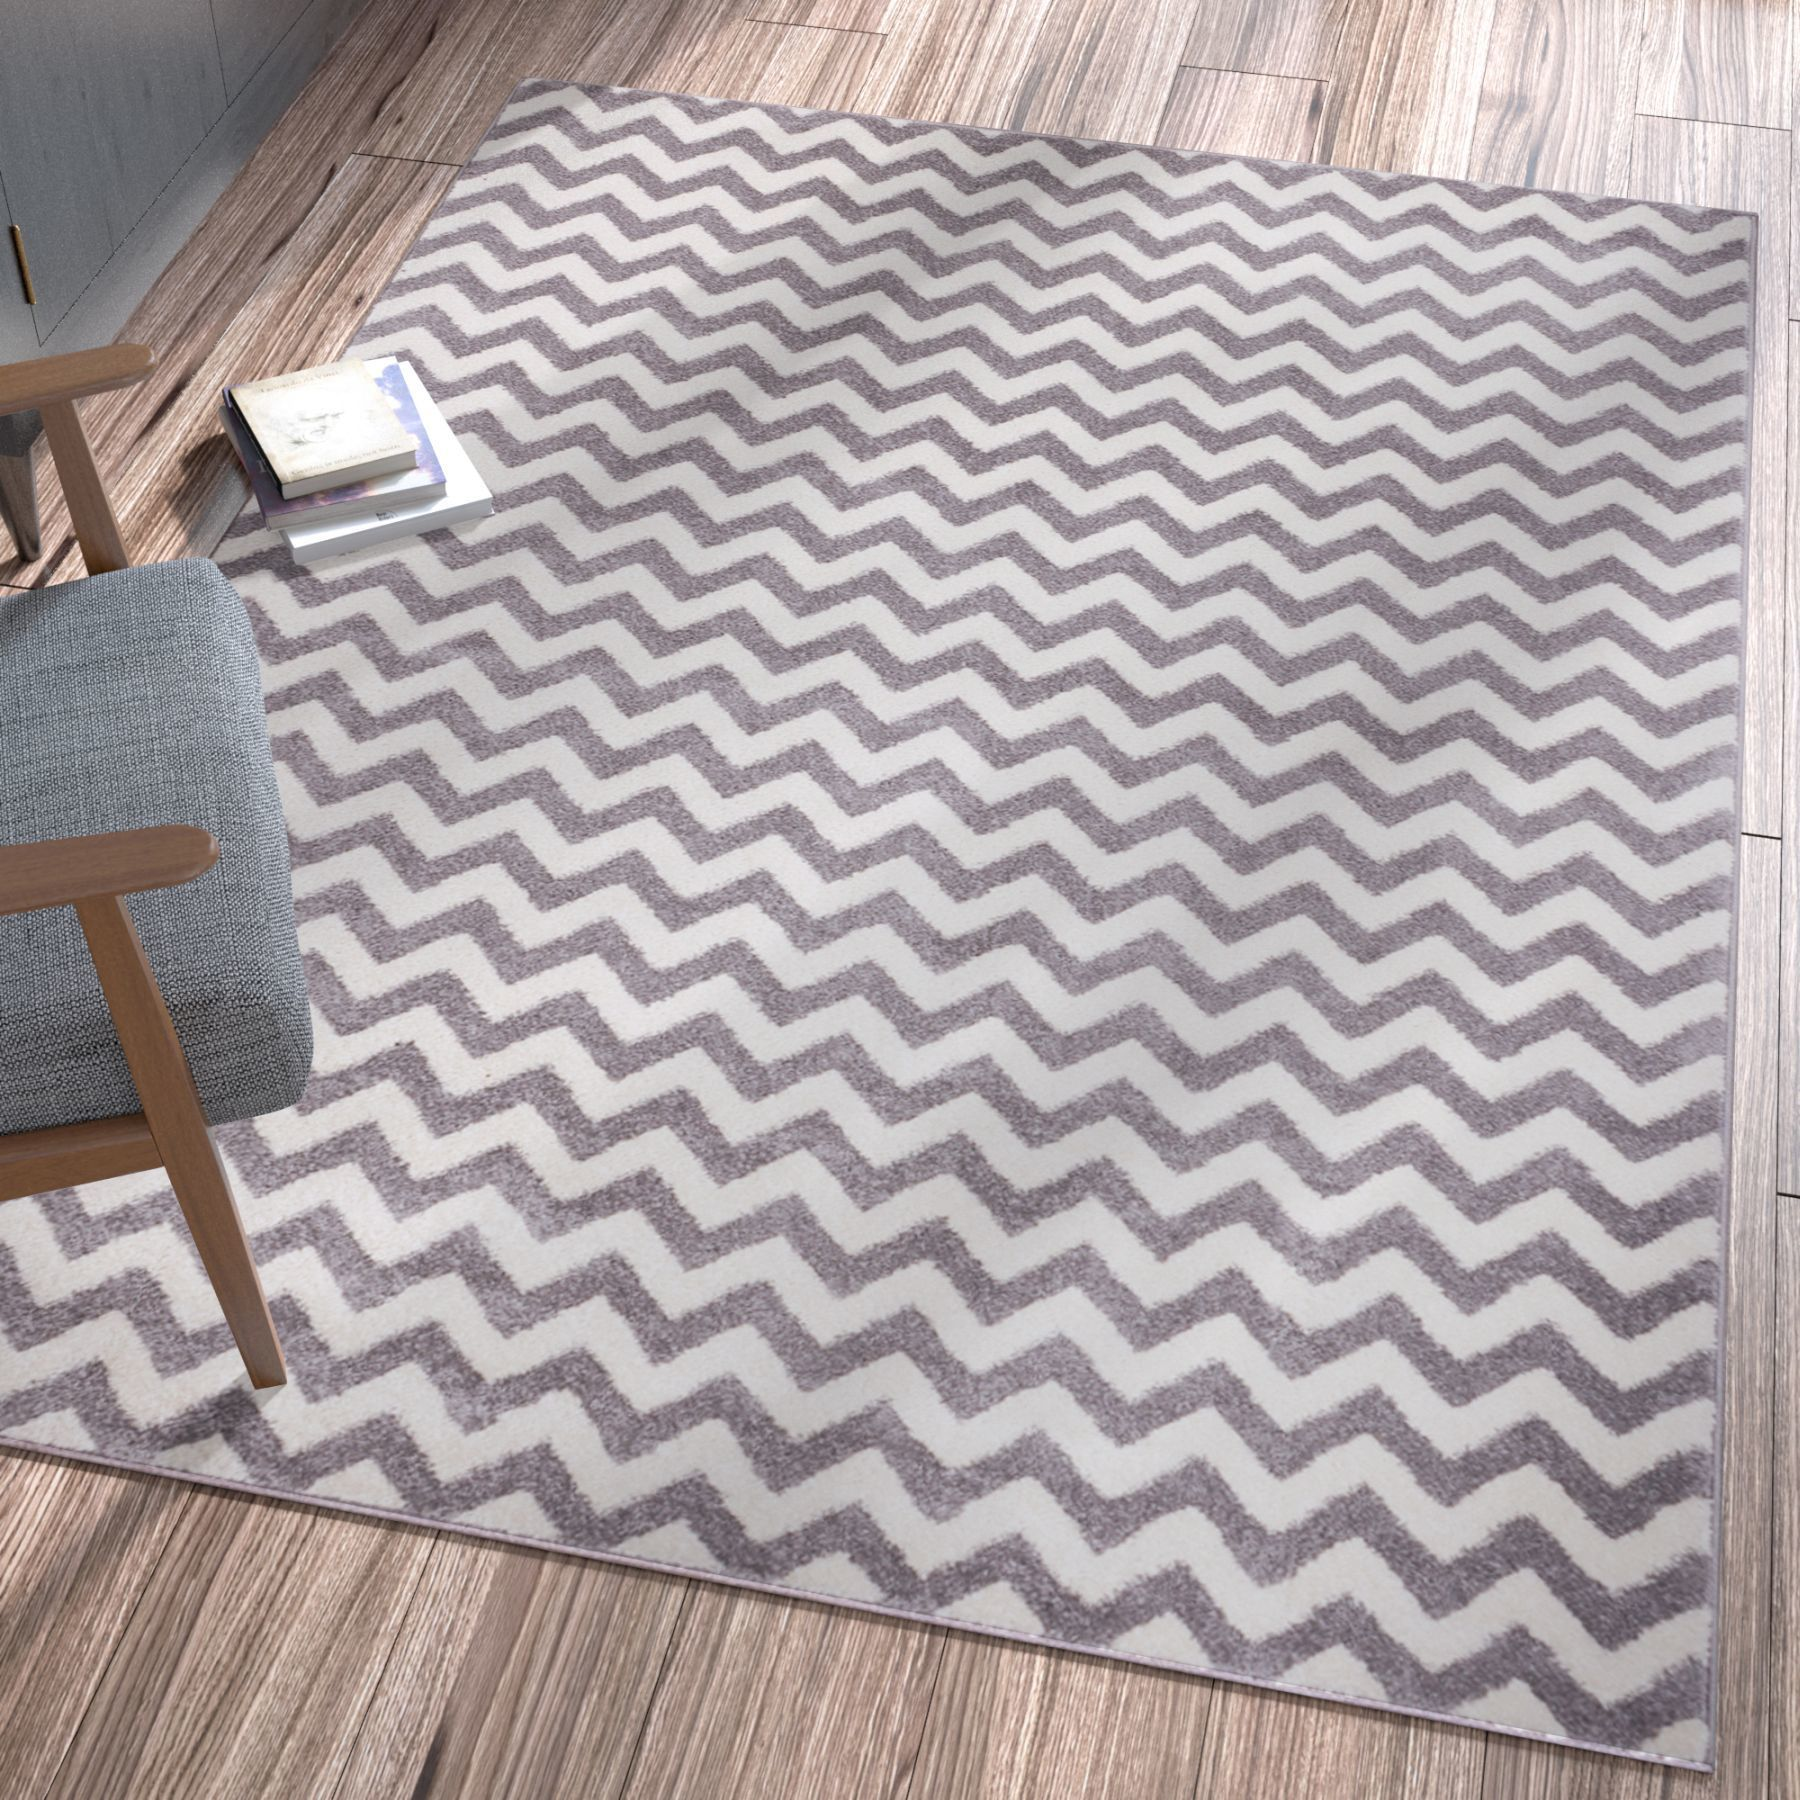 Well Woven Ellie Modern Chevron Zig Zag Grey Area Rug - 33 x 47 (Light Grey)